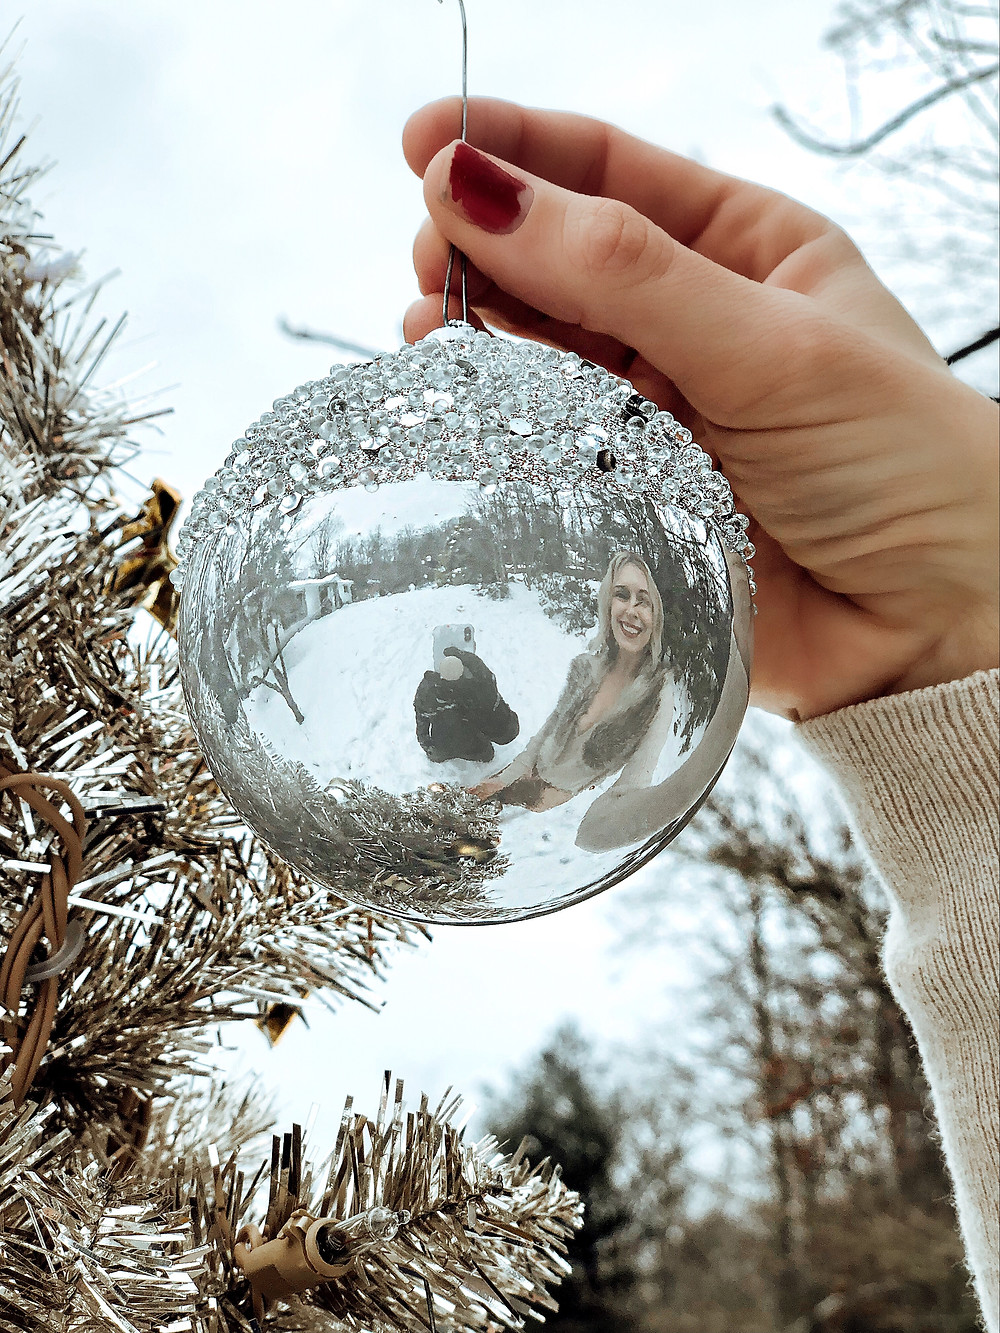 Husband takes photo of him and his wife in the reflection of a silver Christmas ornament.